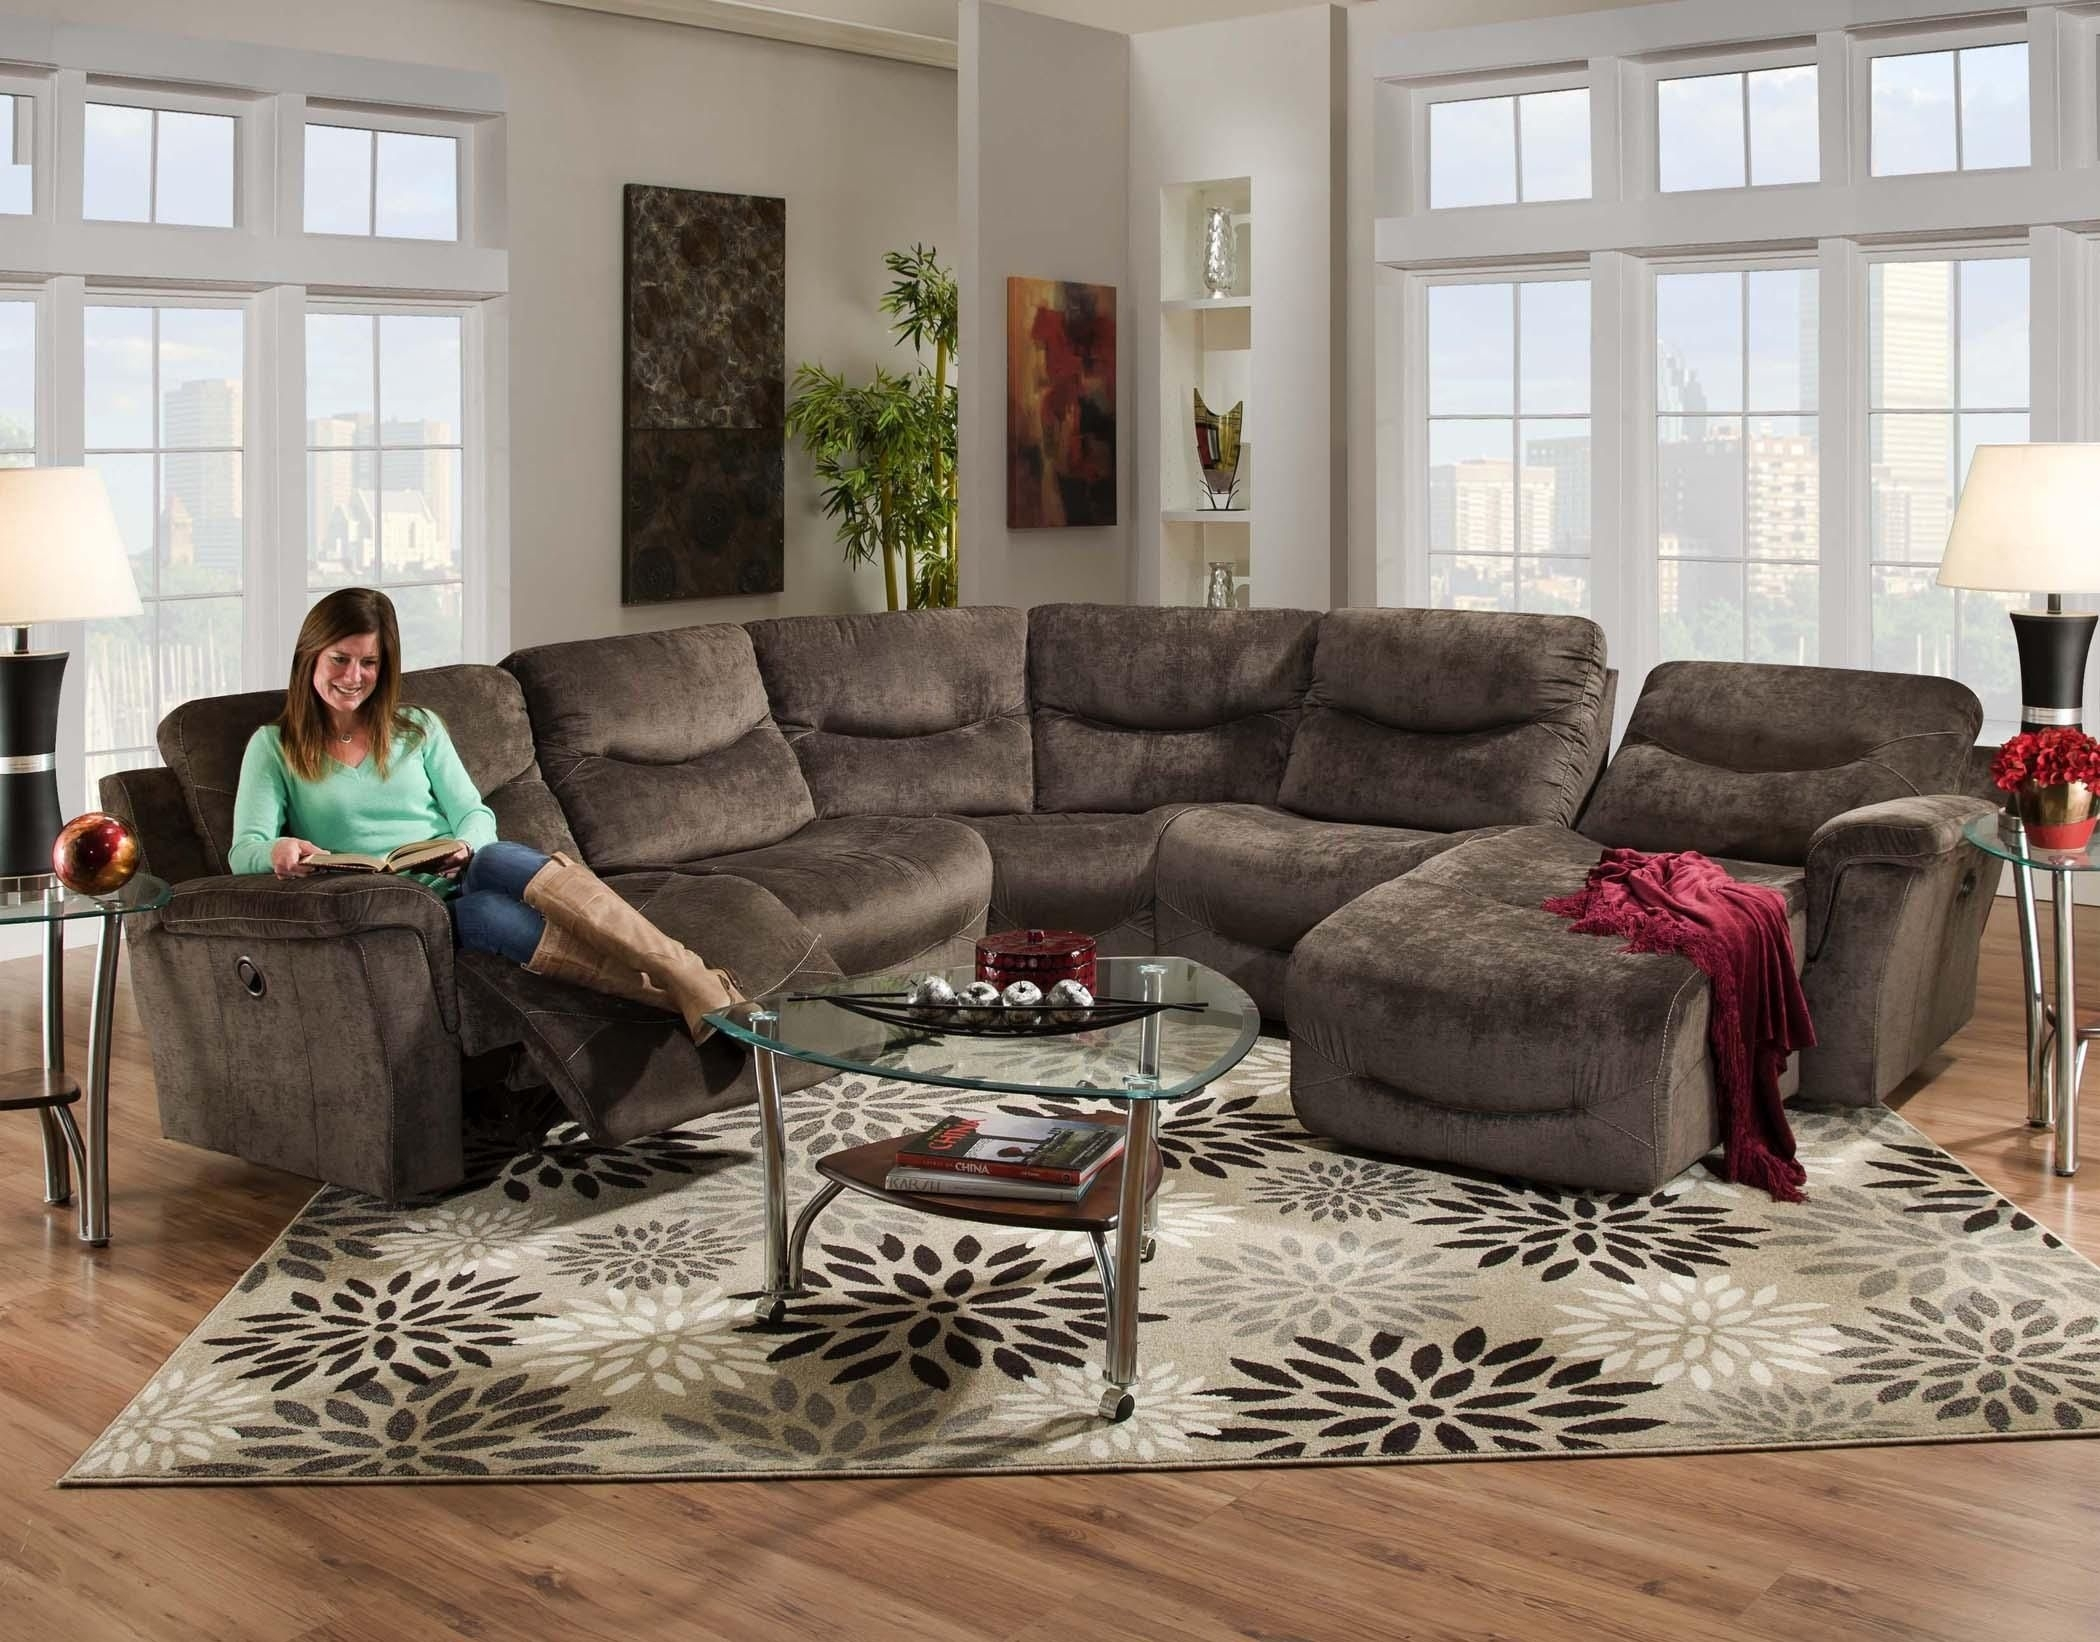 Franklin Furniture: Milano Collection Sectional Sofa Without Inside Harrisburg Pa Sectional Sofas (Image 6 of 10)